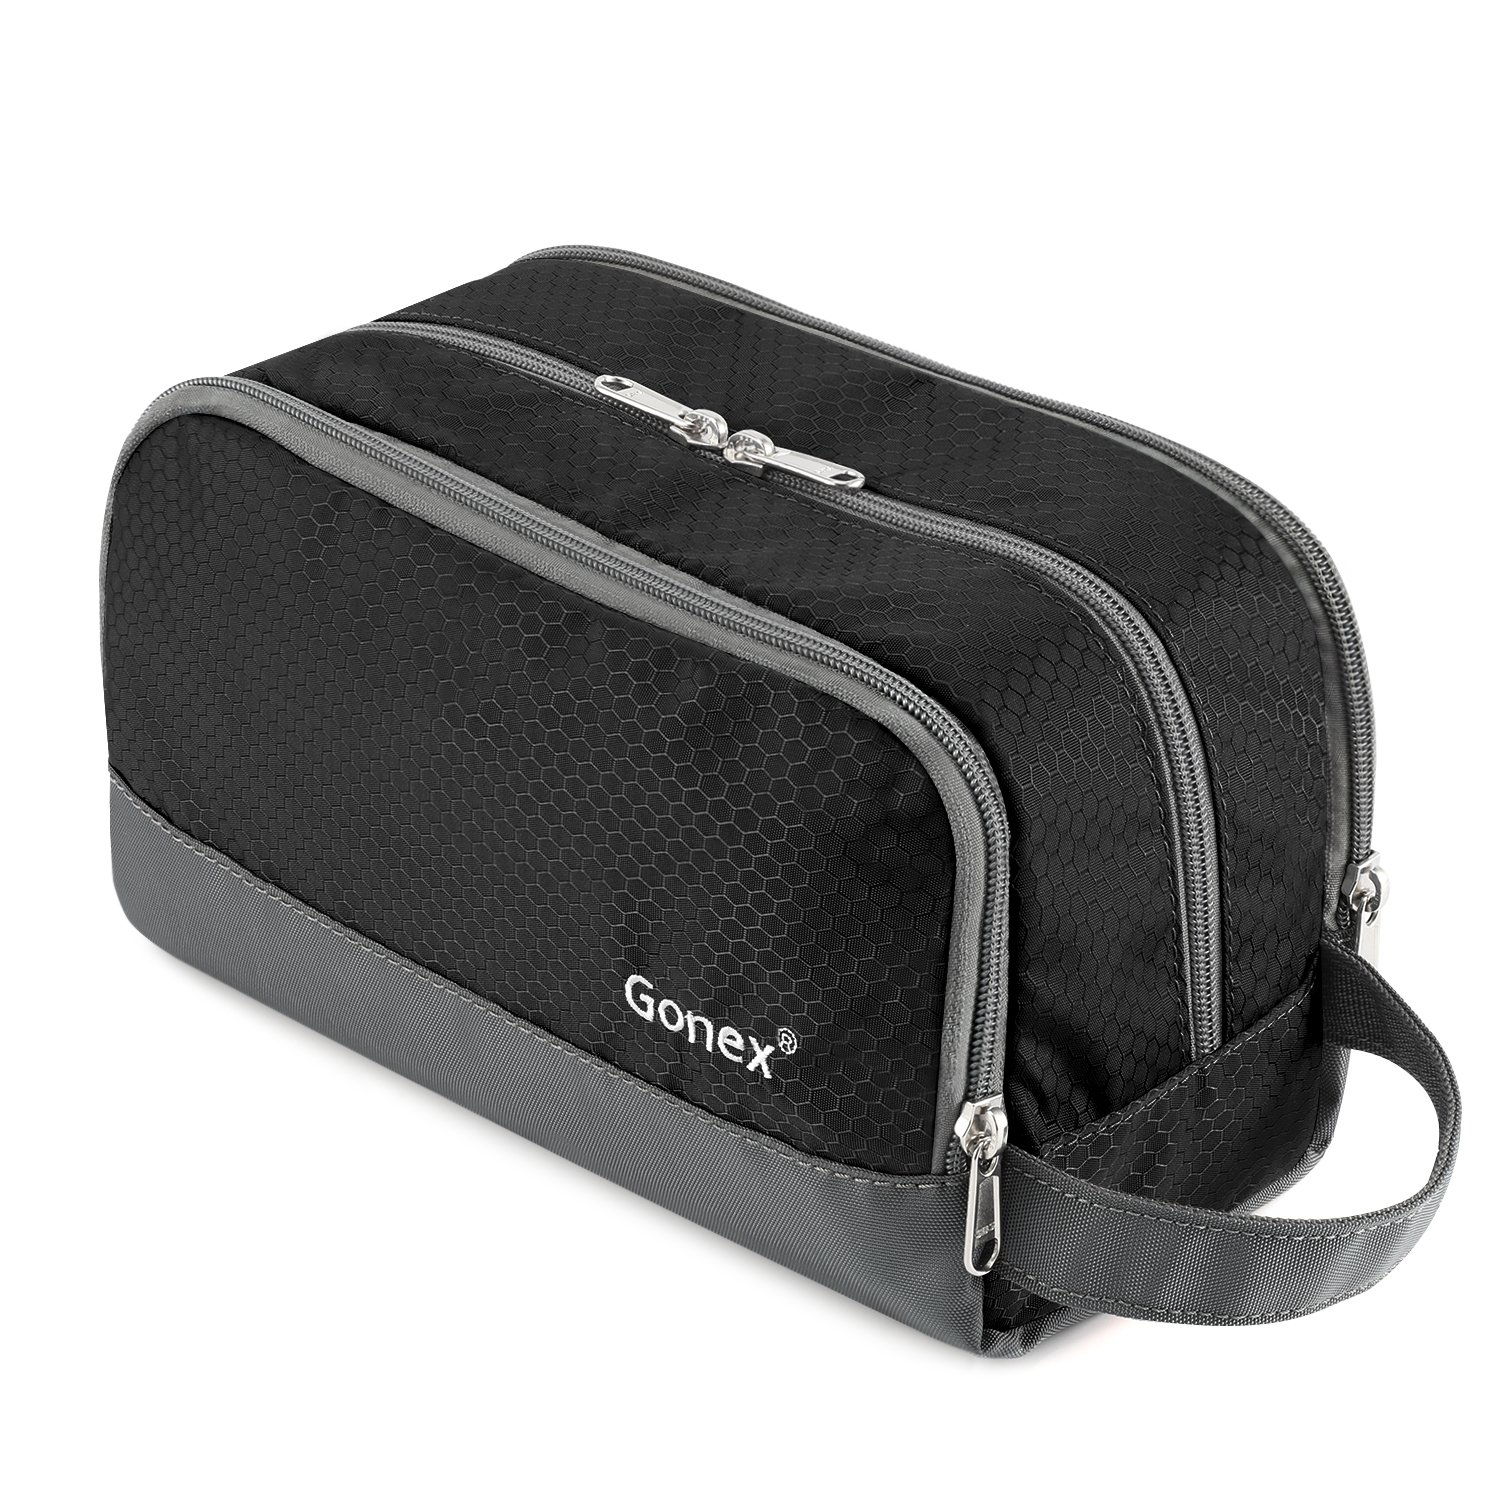 Travel Toiletry Bag Nylon, Gonex Dopp Kit Shaving Bag Toiletry Organizer Black by Gonex